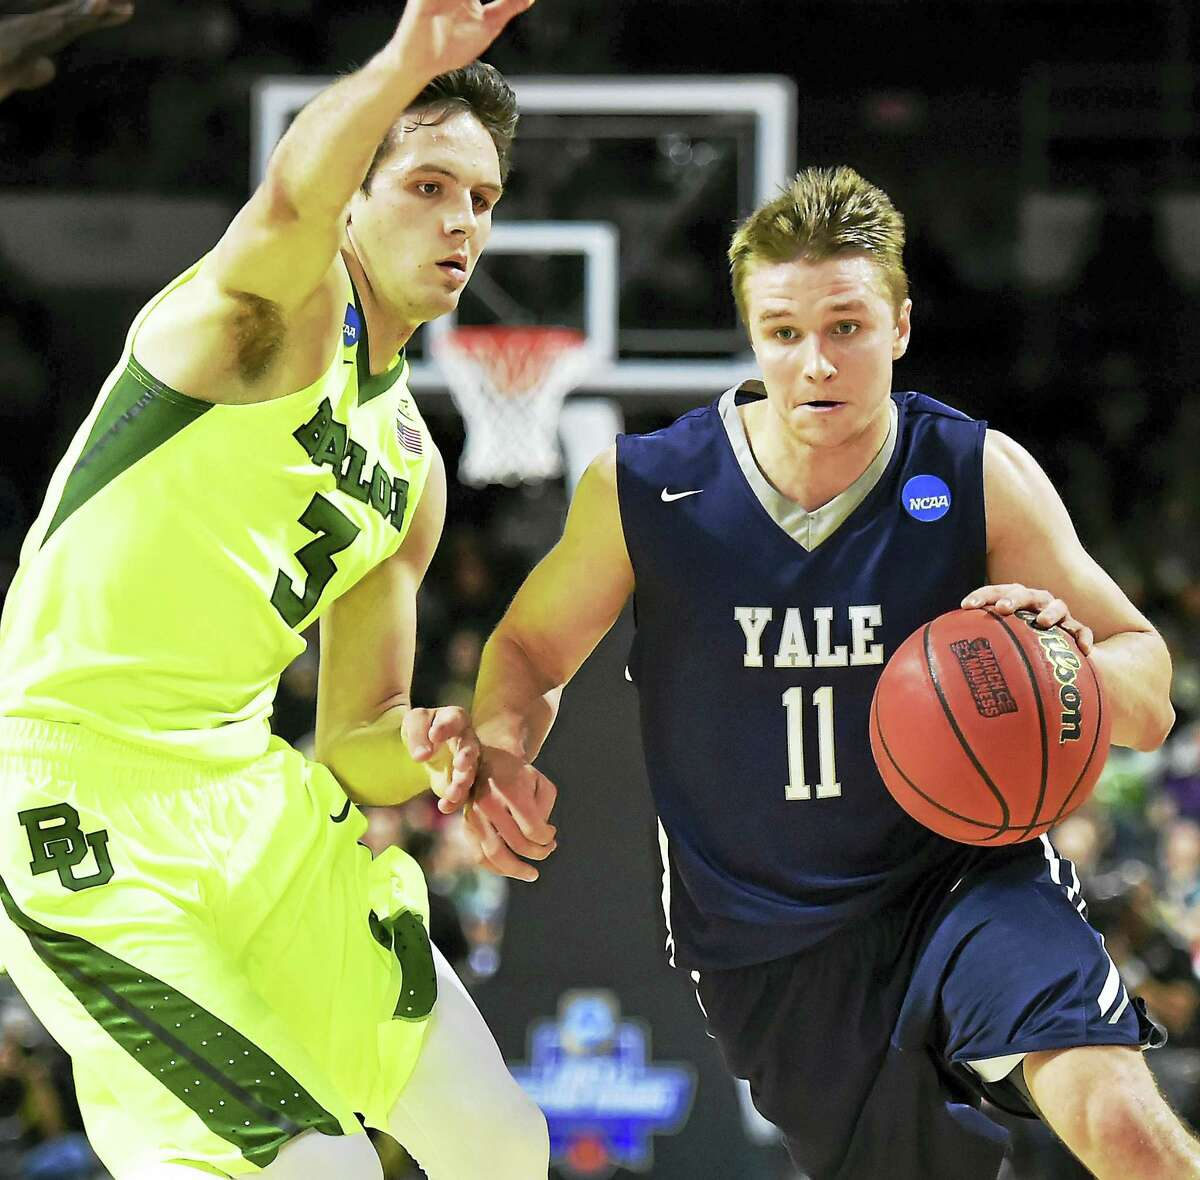 Yale's Makai Mason gave Baylor's Alex Copeland and the Bears fits Thursday, scoring a career-high 31 points in the Bulldogs' 79-75 upset win.